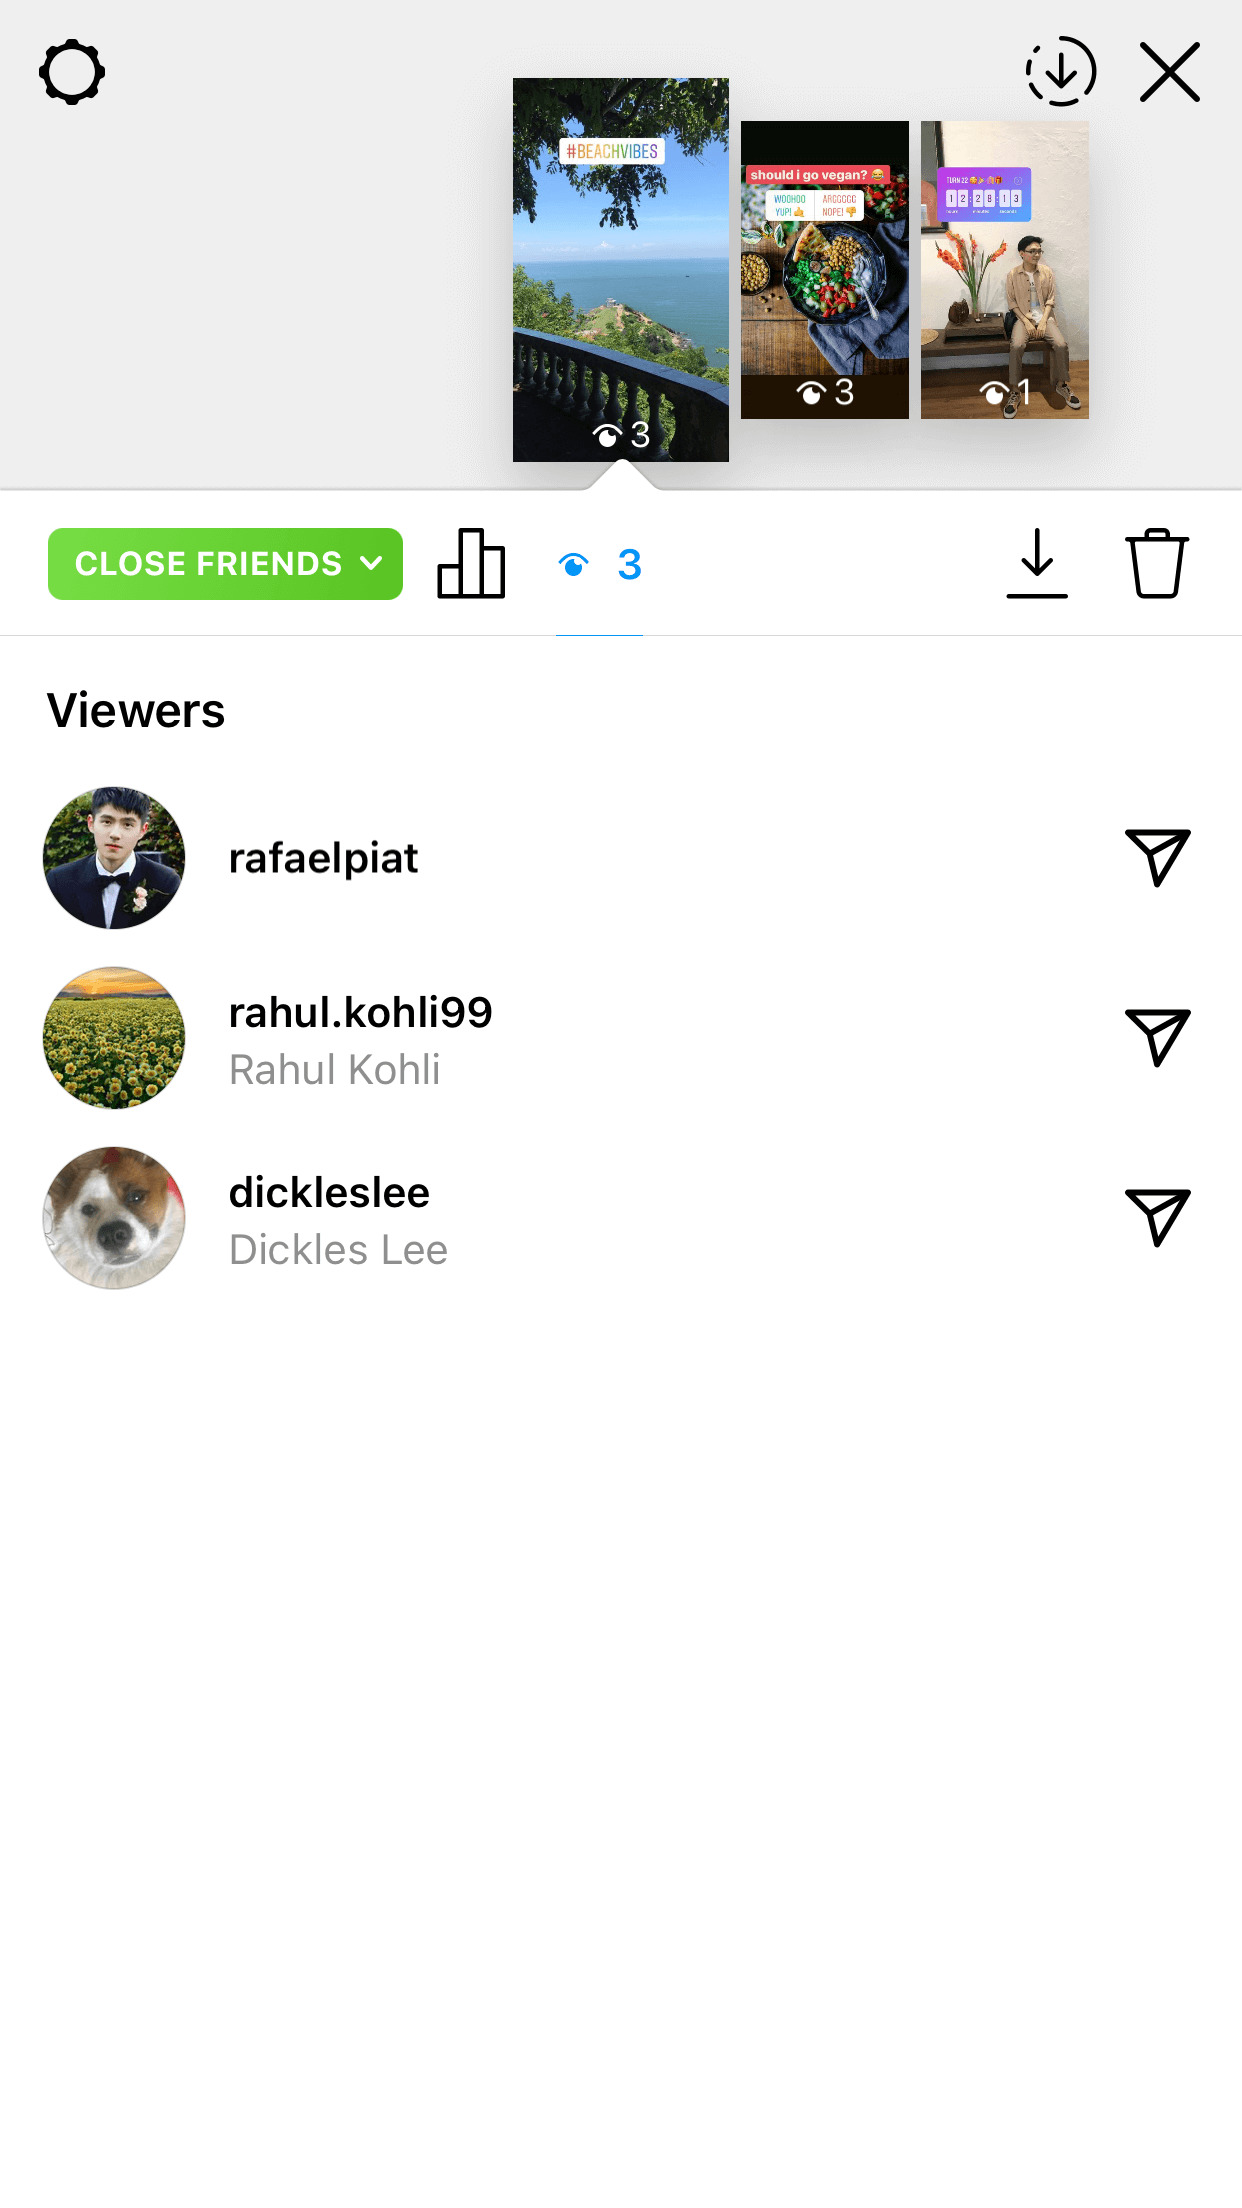 Swipe up your stories to check the viewer list and count